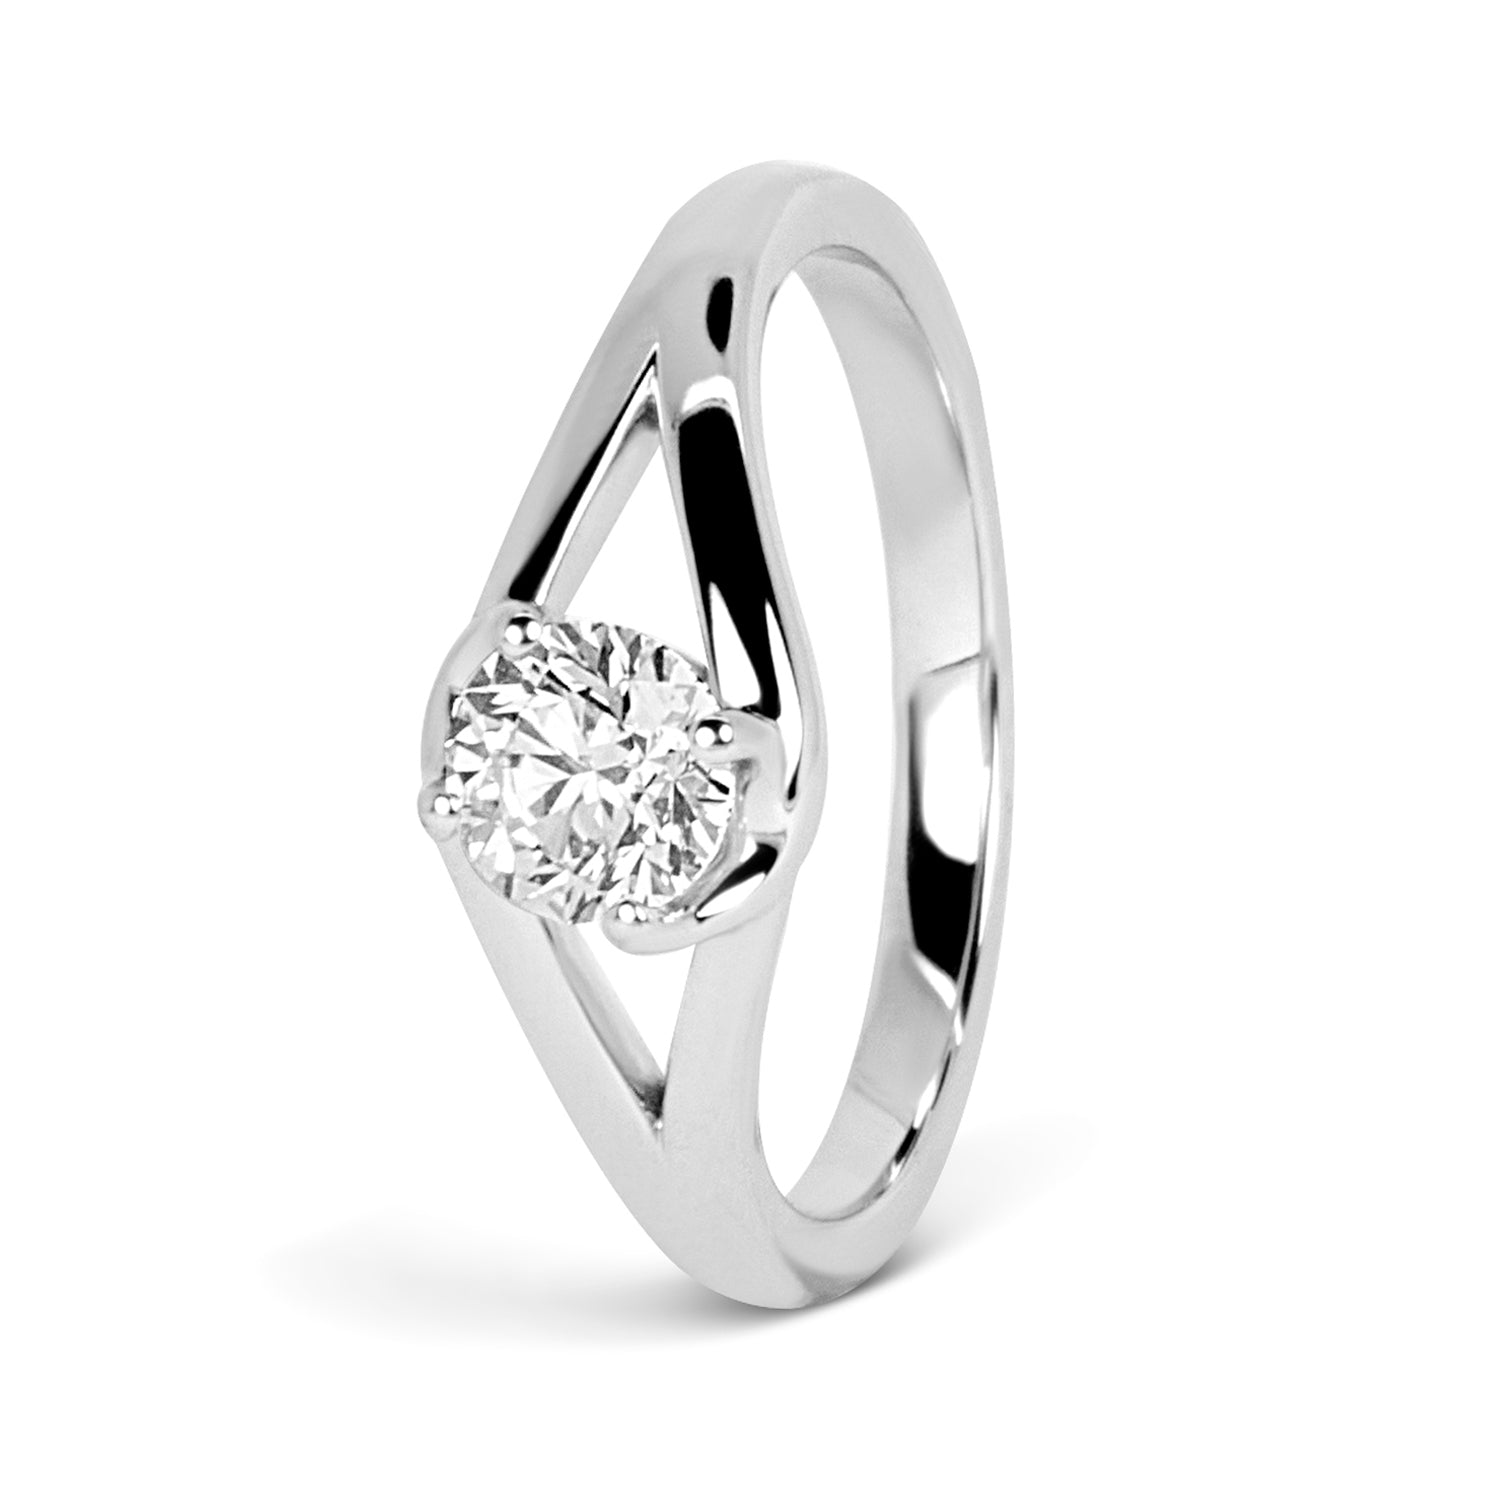 Bespoke Andy engagement ring - white Fairtrade Gold and 0.5ct Canadian diamond